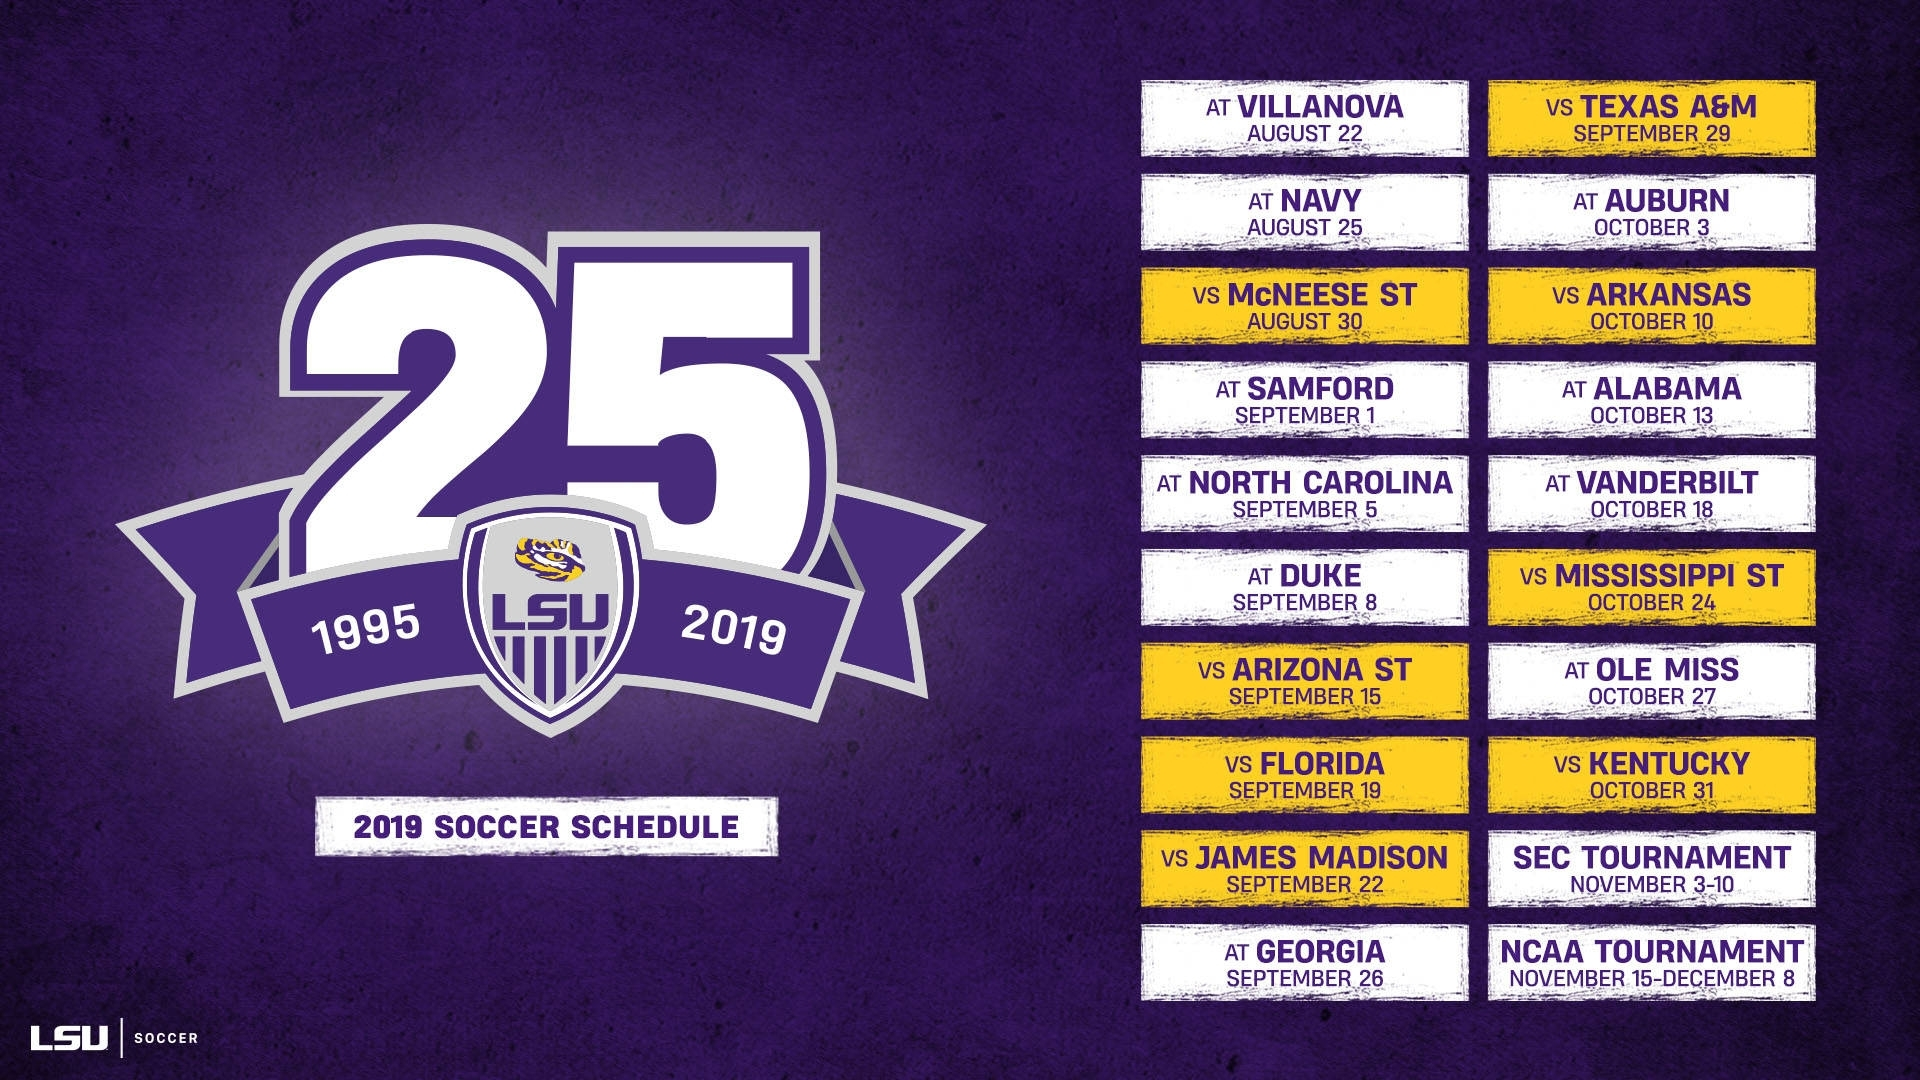 Lsu Soccer Announces 2019 Schedule - Lsu Tigers